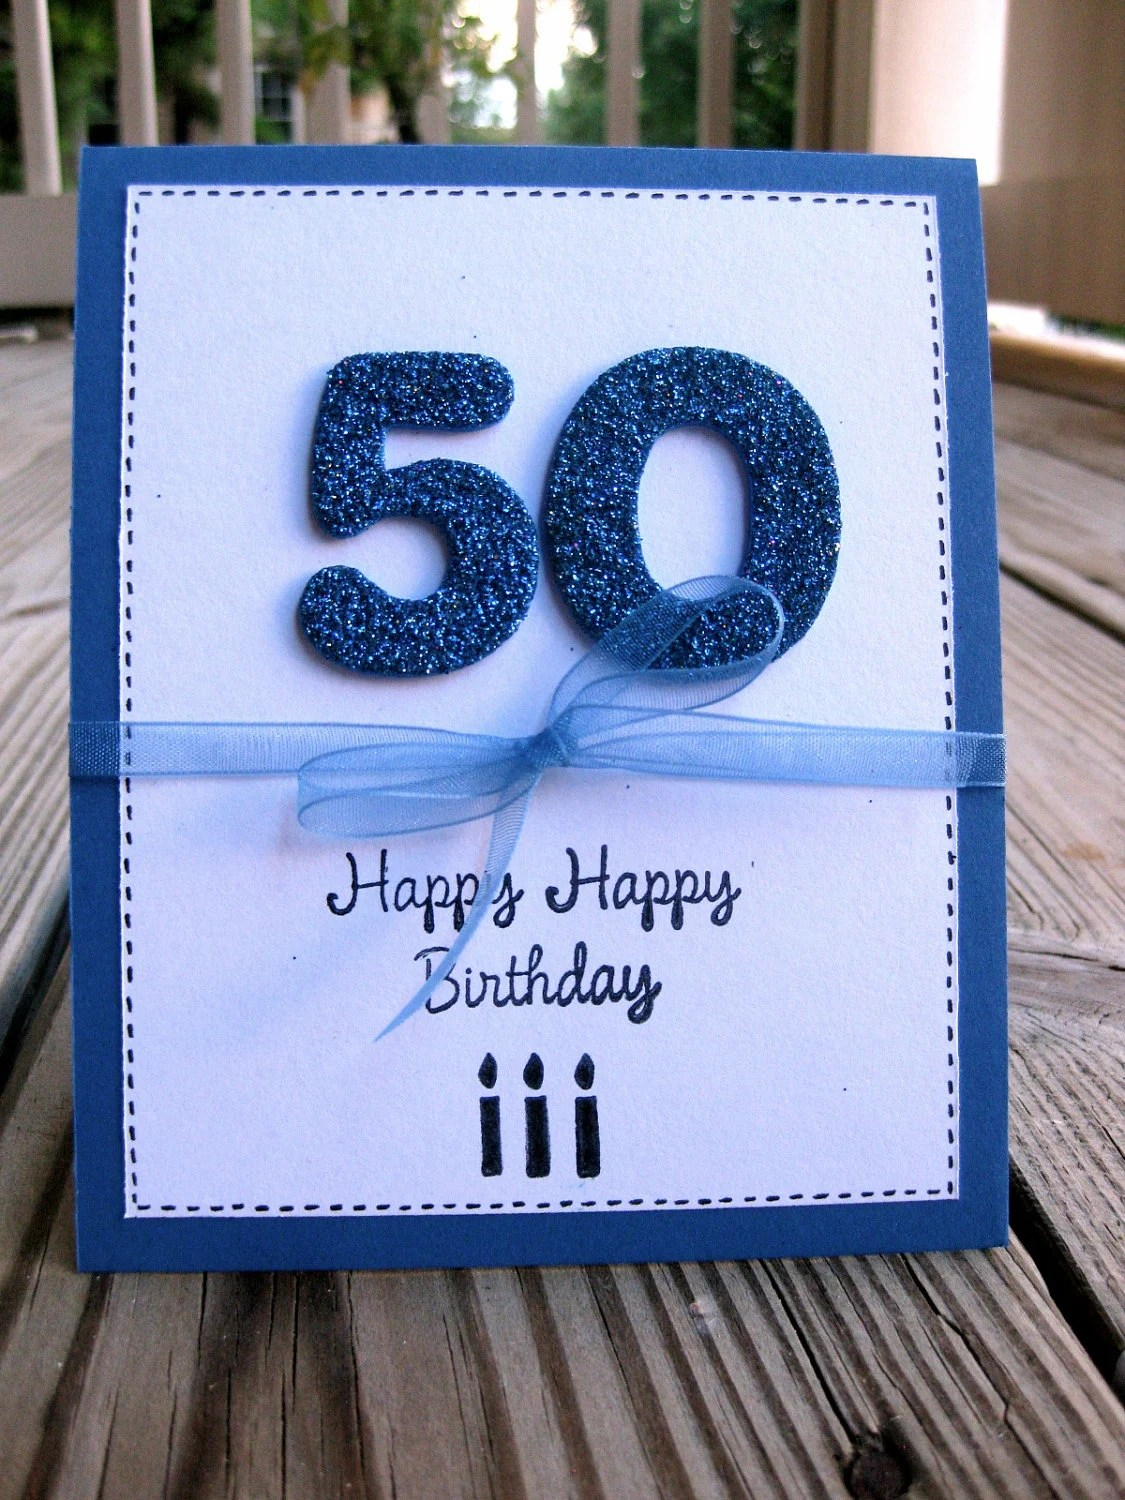 Items Similar To Men's 50th Birthday Greeting Card On Etsy